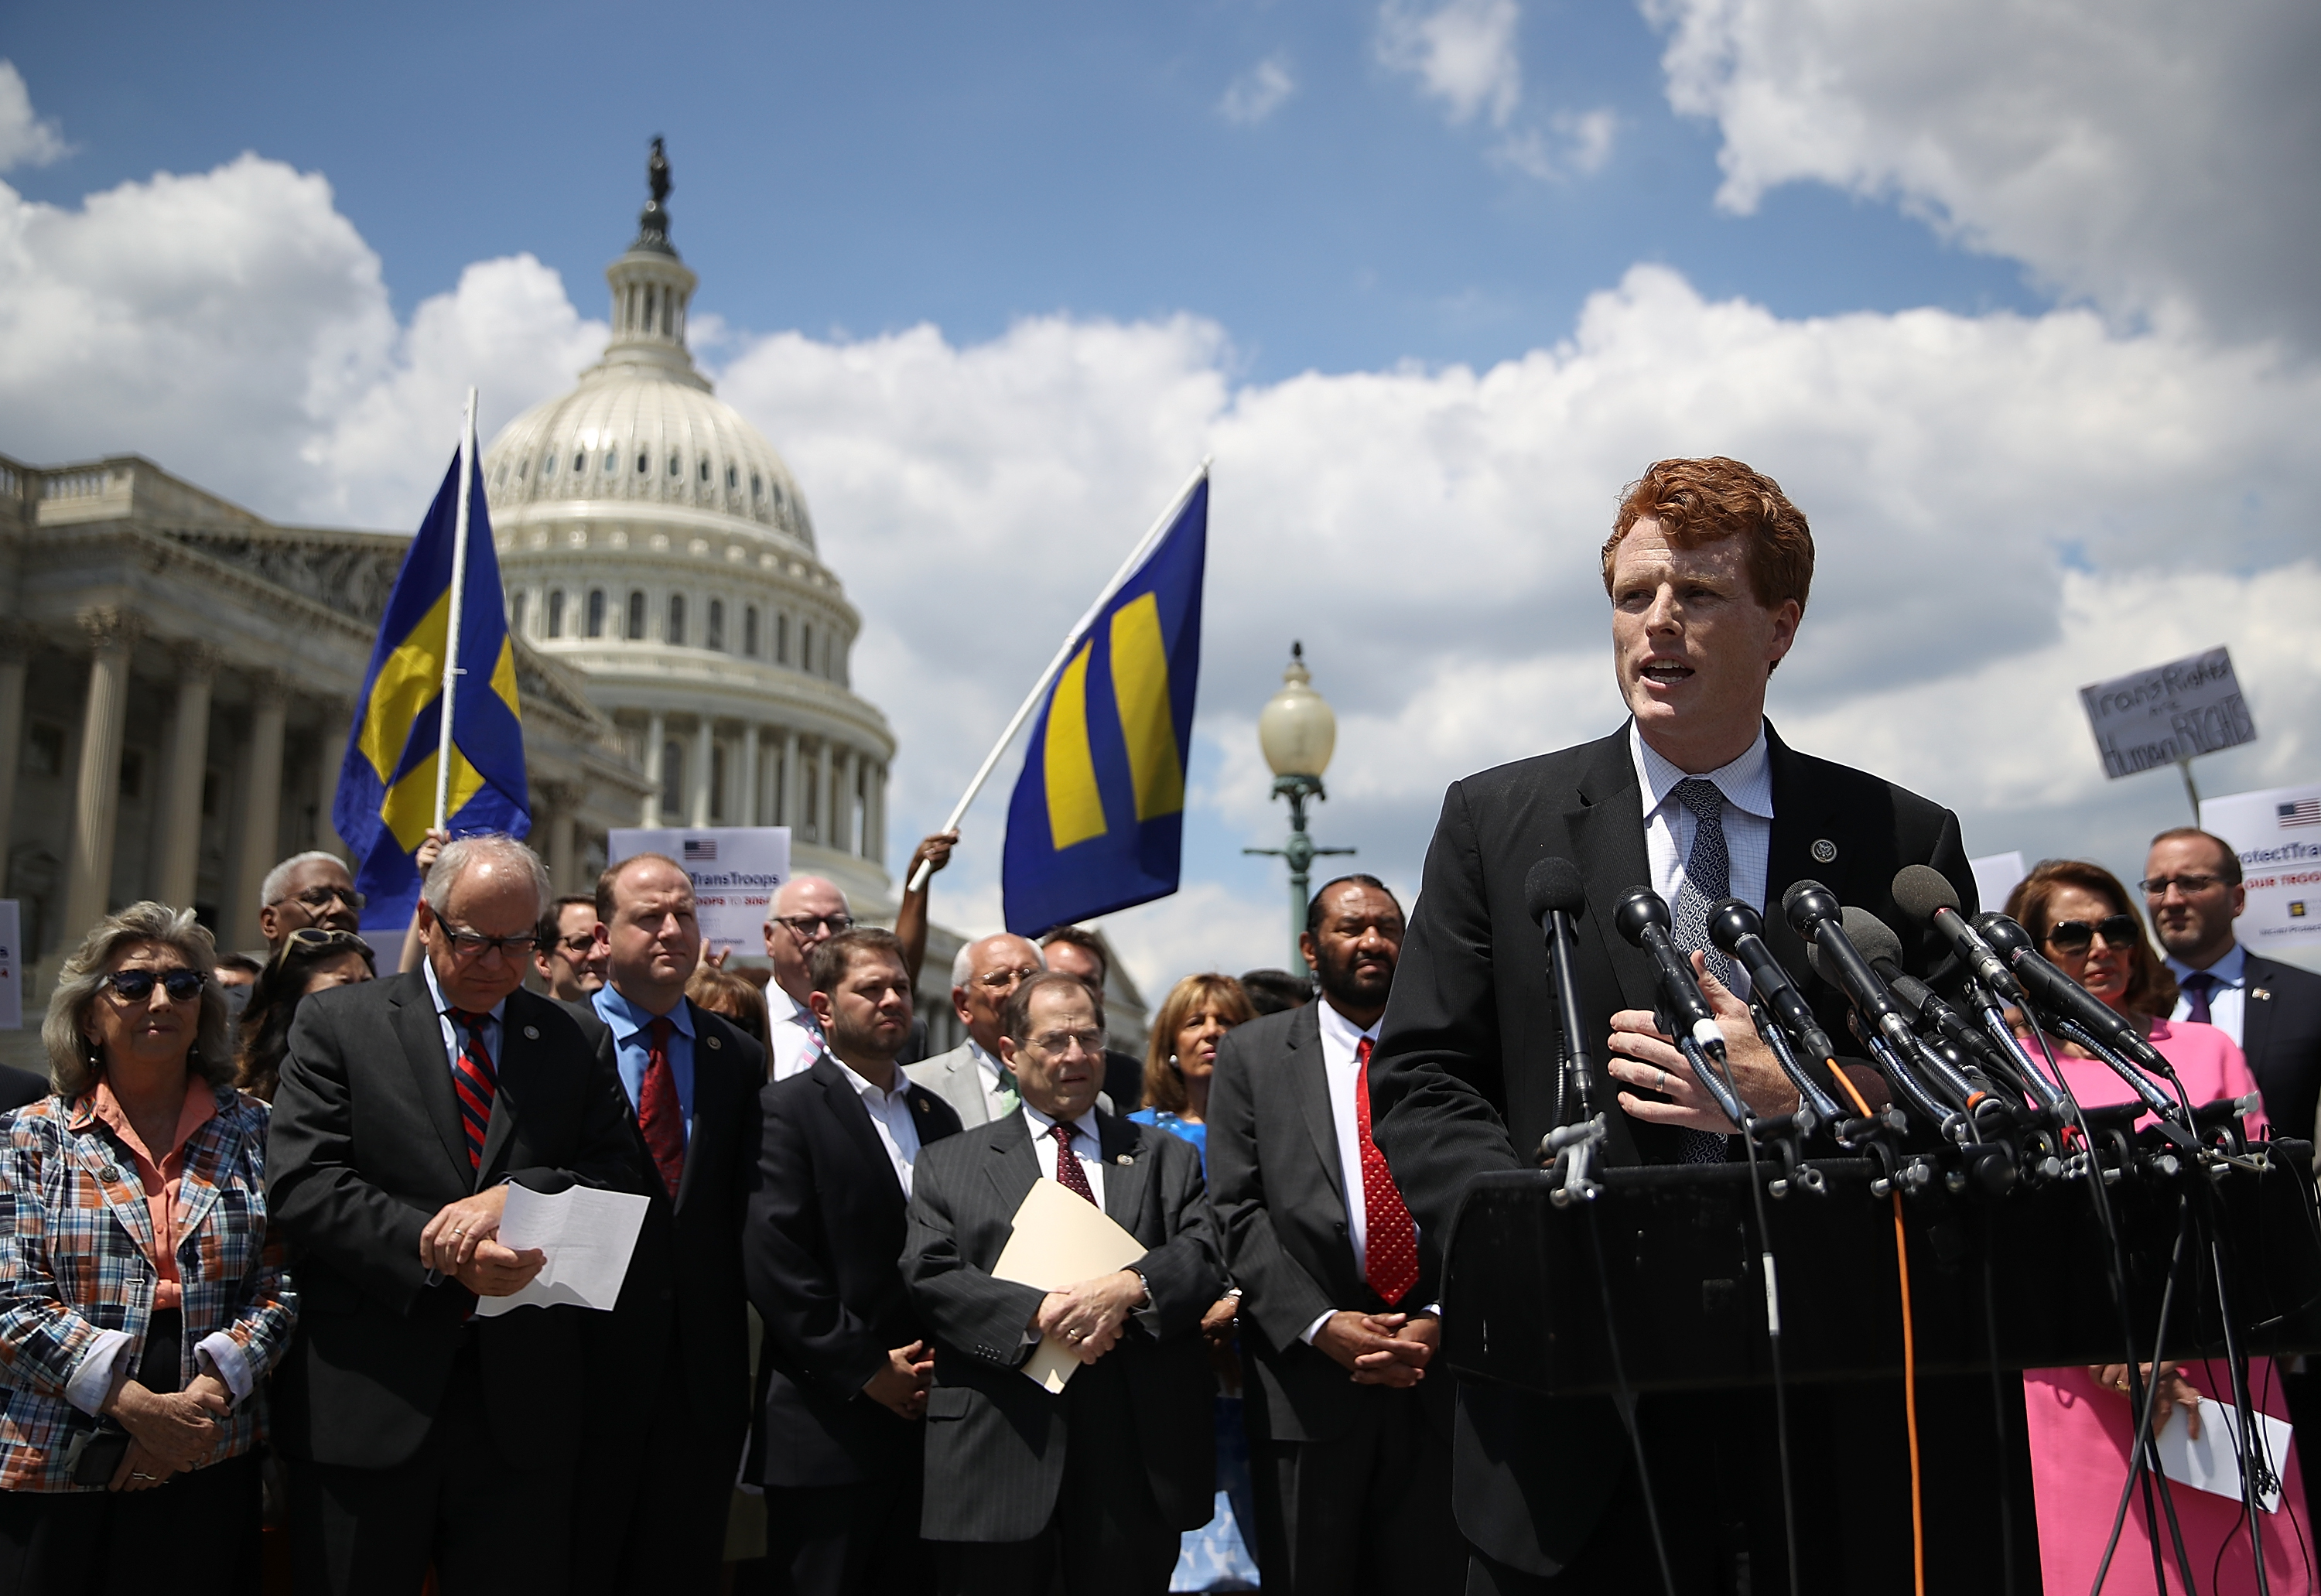 WASHINGTON, DC - JULY 26: U.S. Rep. Joe Kennedy (D-MA) speaks during a press conference condemning the new ban on transgendered servicemembers on July 26, 2017 in Washington, DC. U.S. Rep. Joe Kennedy held a news conference with members of the House leadership and the LGBT Equality Caucus to denounce the decision by U.S. President Donald Trump to ban transgendered servicemembers. (Photo by Justin Sullivan/Getty Images)